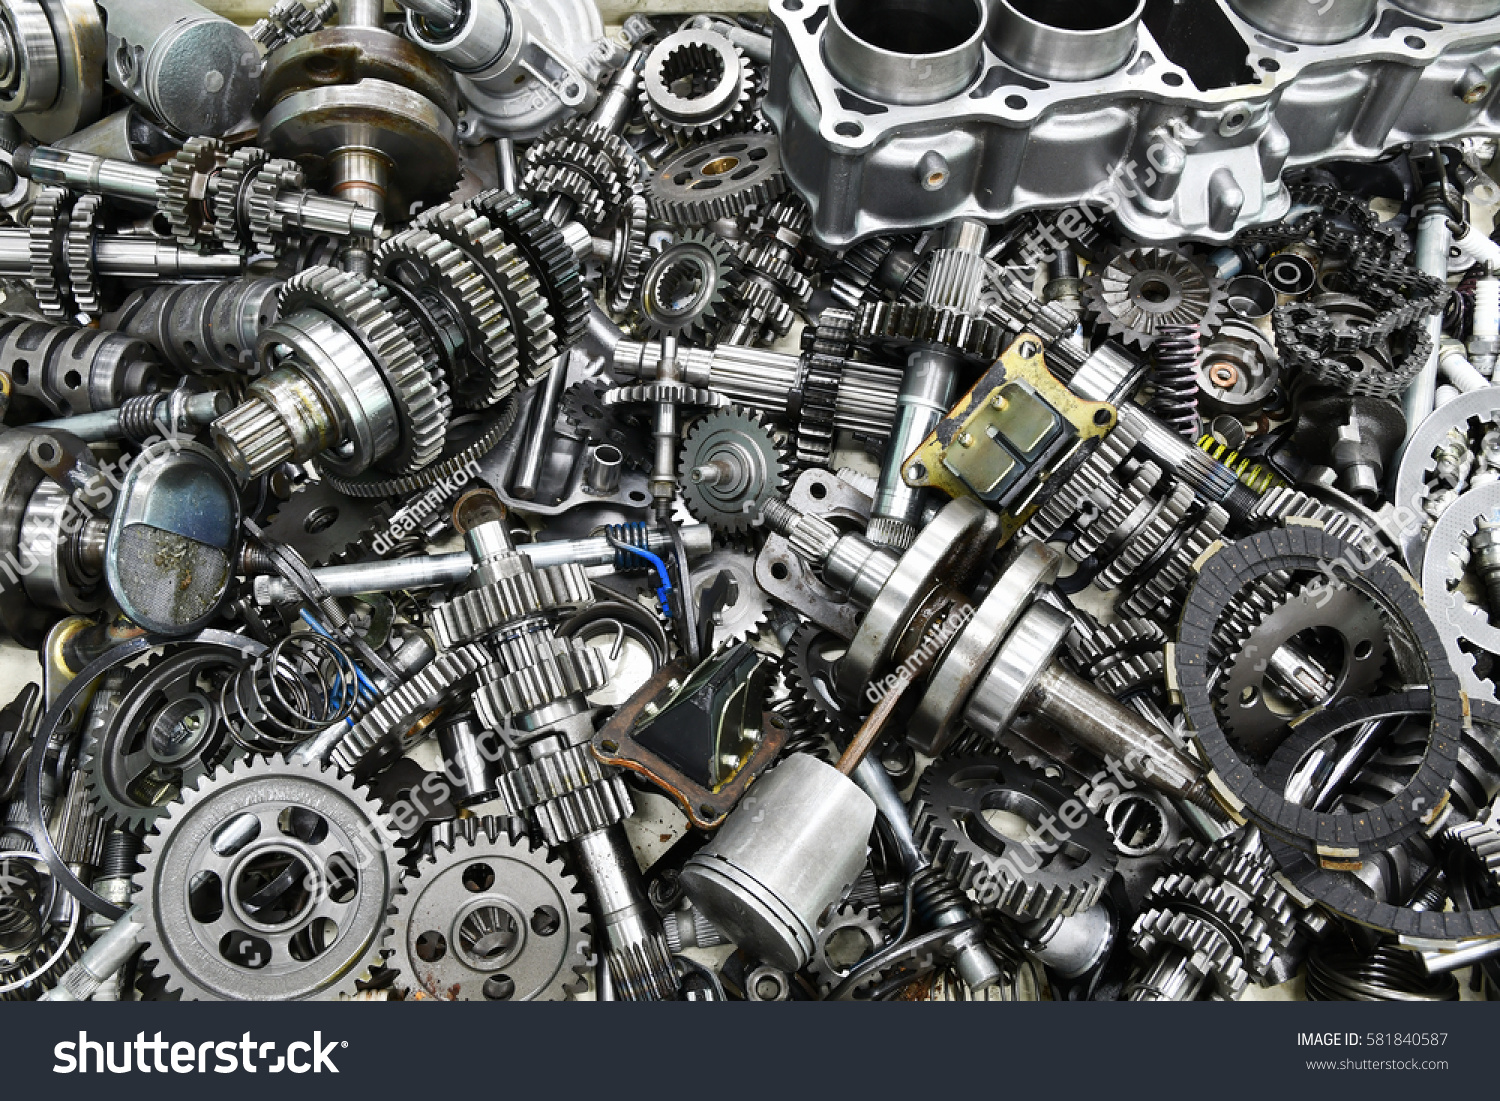 Motorcycle Engine Parts Stock Photo Edit Now 581840587 Shutterstock